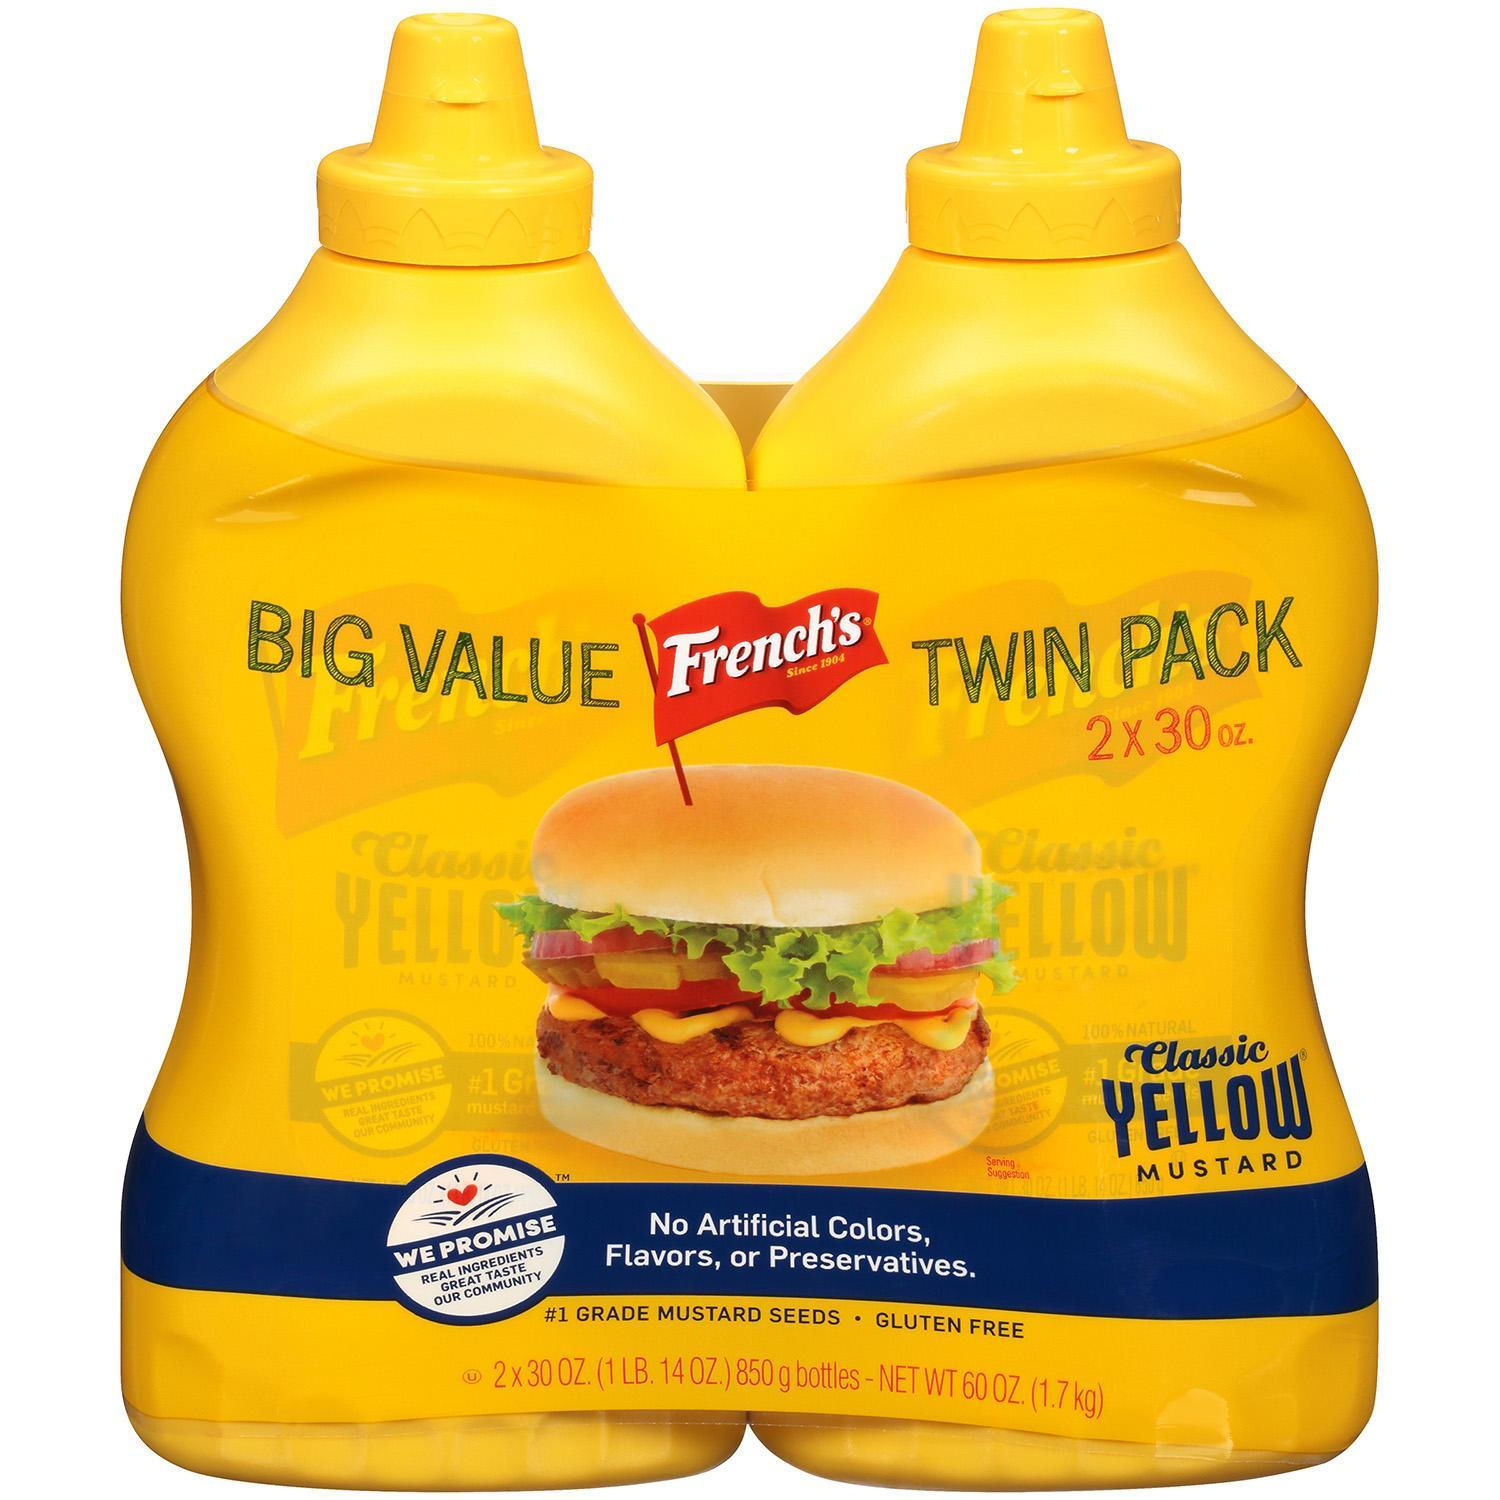 French's 100% Natural Classic Yellow Mustard (30 oz., 2 pk.)  - $6.98